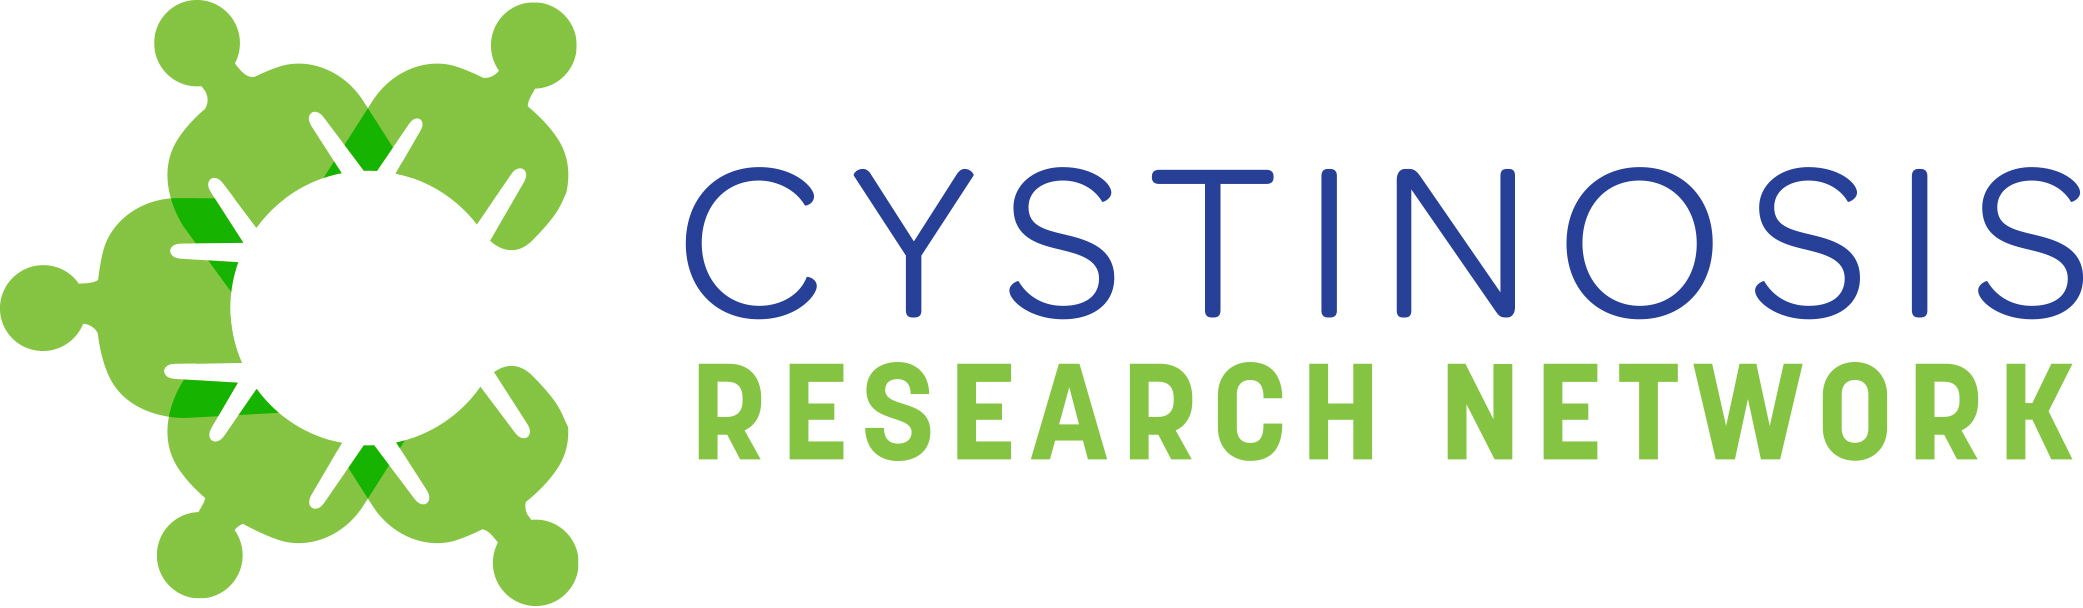 Title Sponsor -  Cystinosis Research Network - Logo